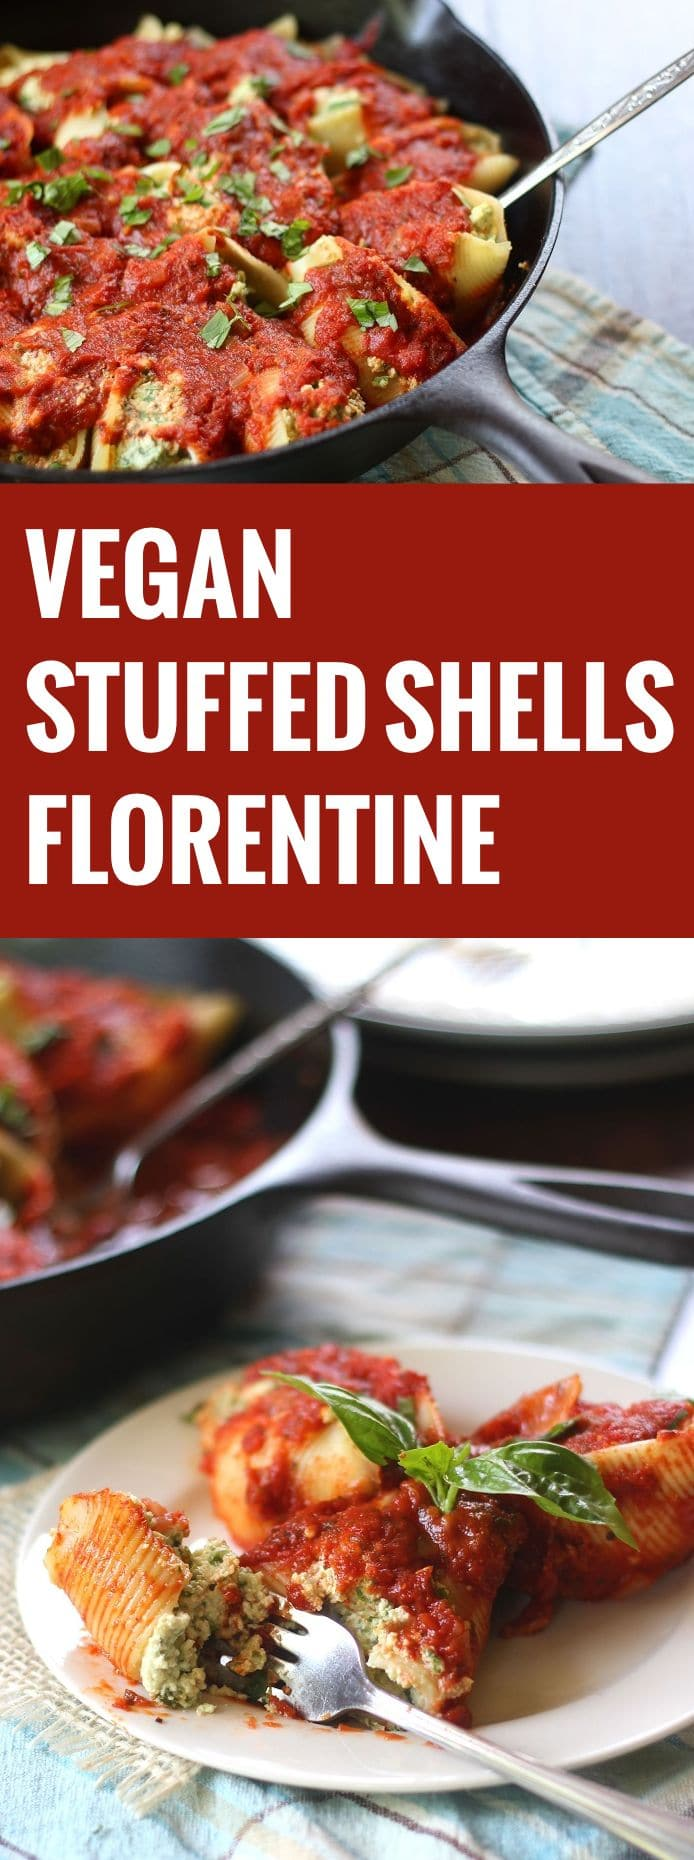 Vegan Stuffed Shells Florentine